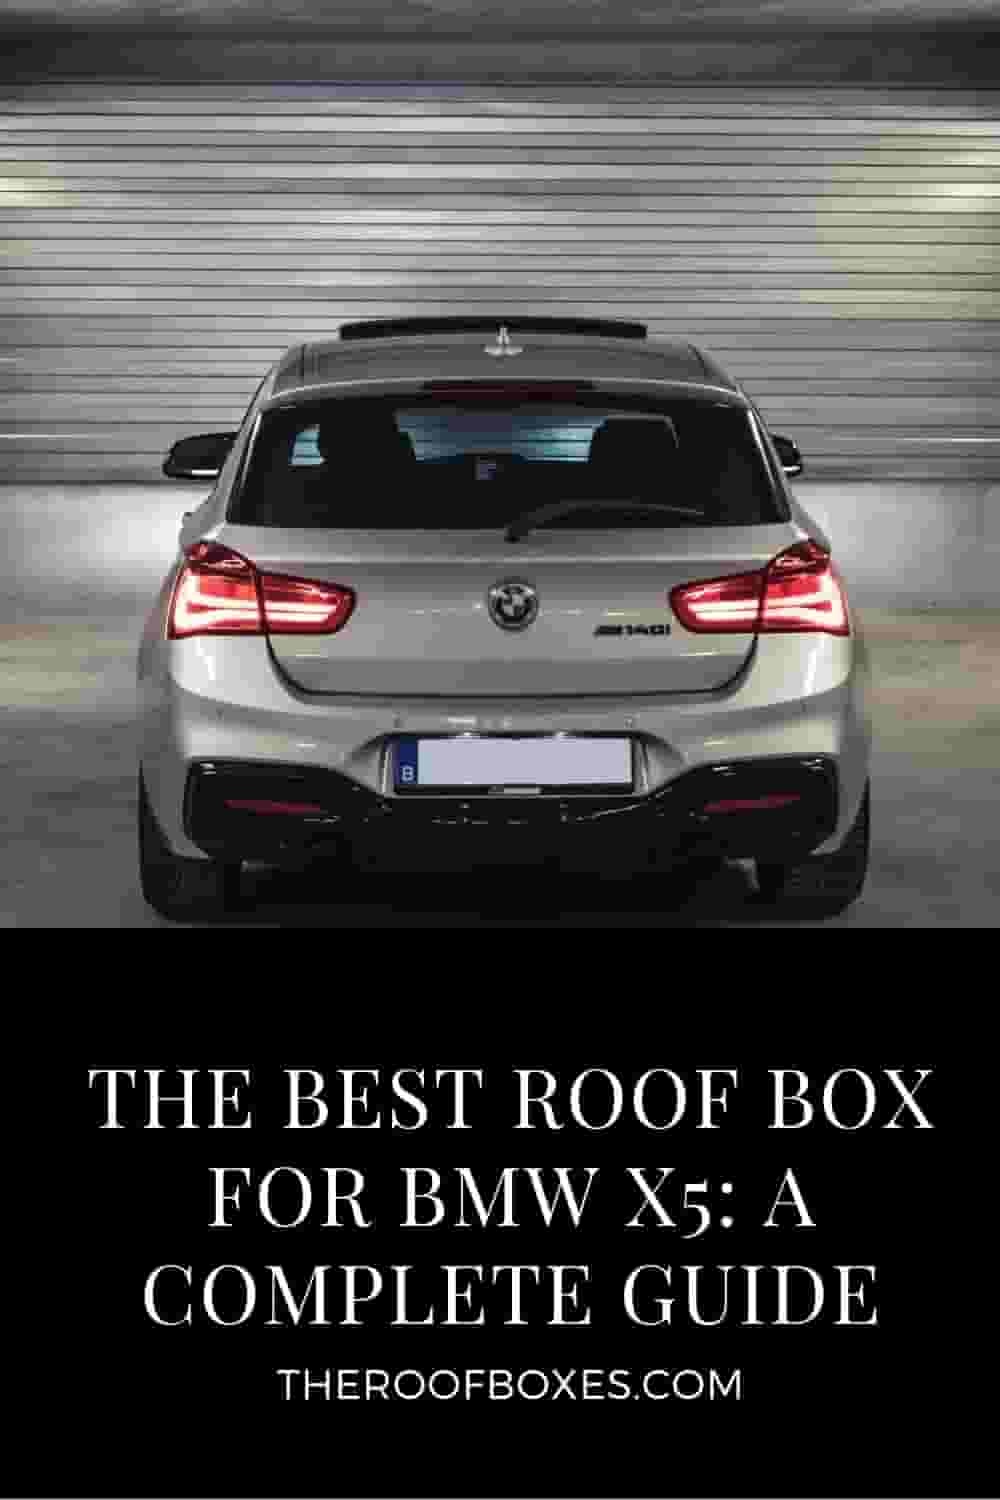 Roof Box for BMW X5 – Reviews and Comparison